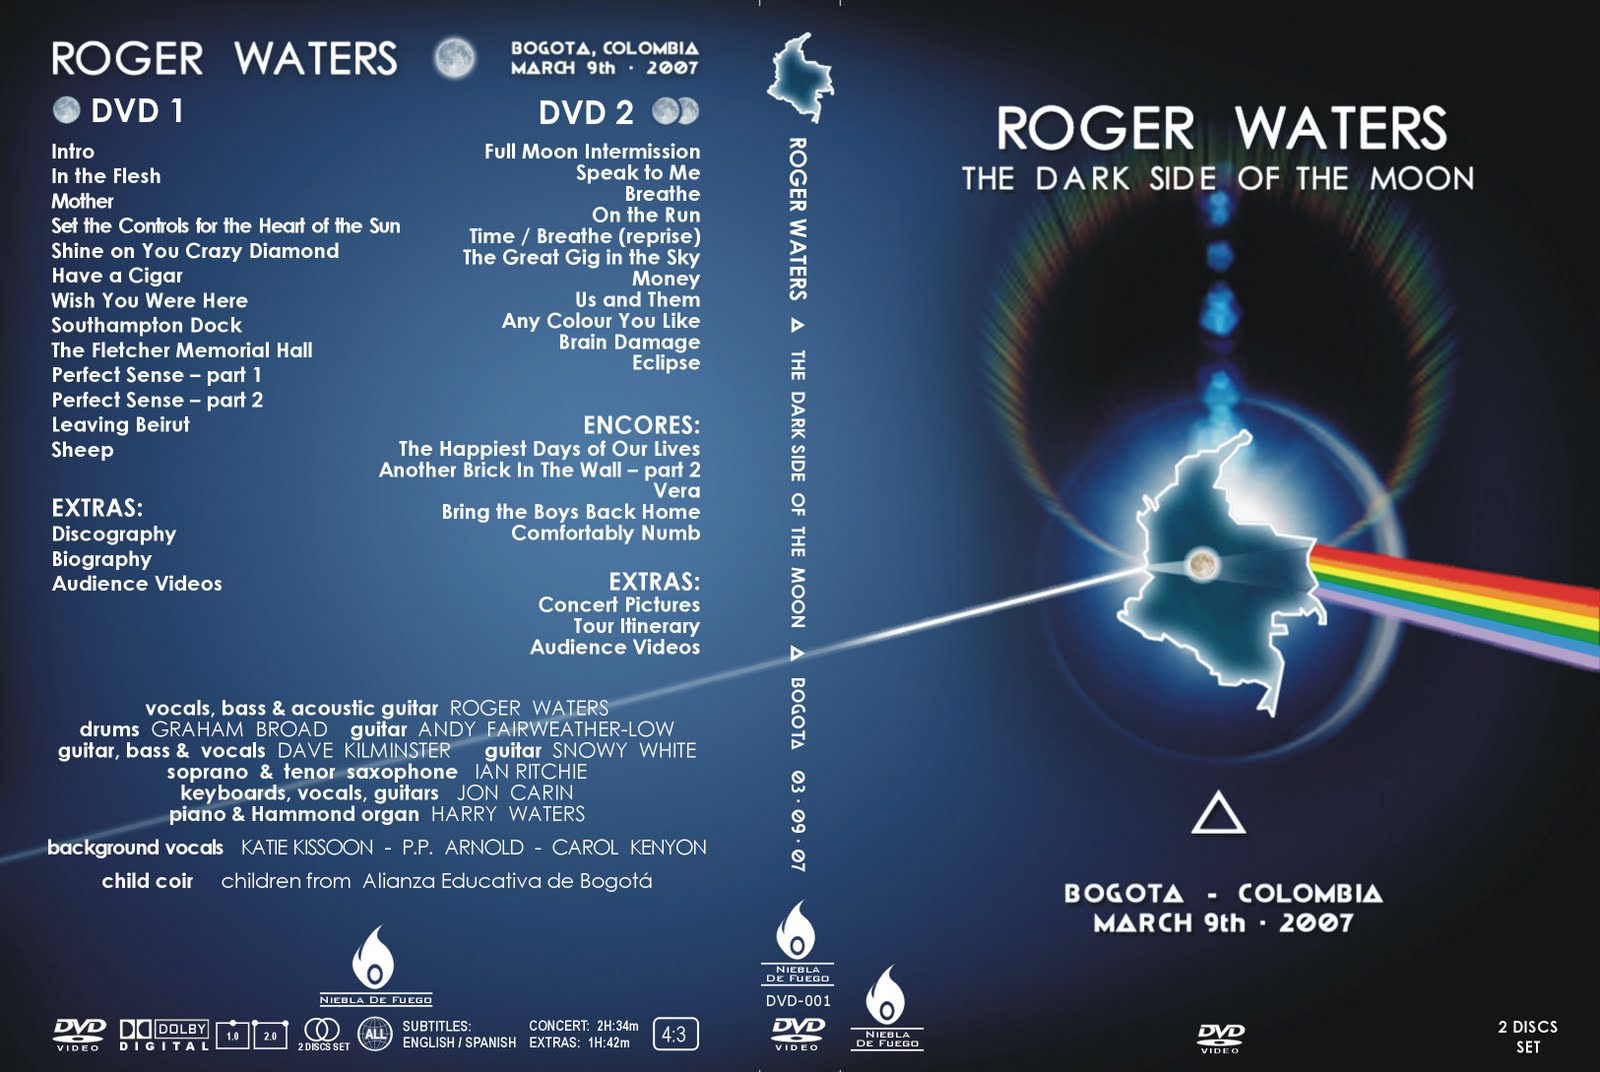 http://2.bp.blogspot.com/-s_jrqua8lG8/Tddqx2bqS2I/AAAAAAAACyQ/qsQM4JYukNU/s1600/001+-+DVD+Cover++For+ShowRoger+Waters+Live+At+Bgota+2007.jpg